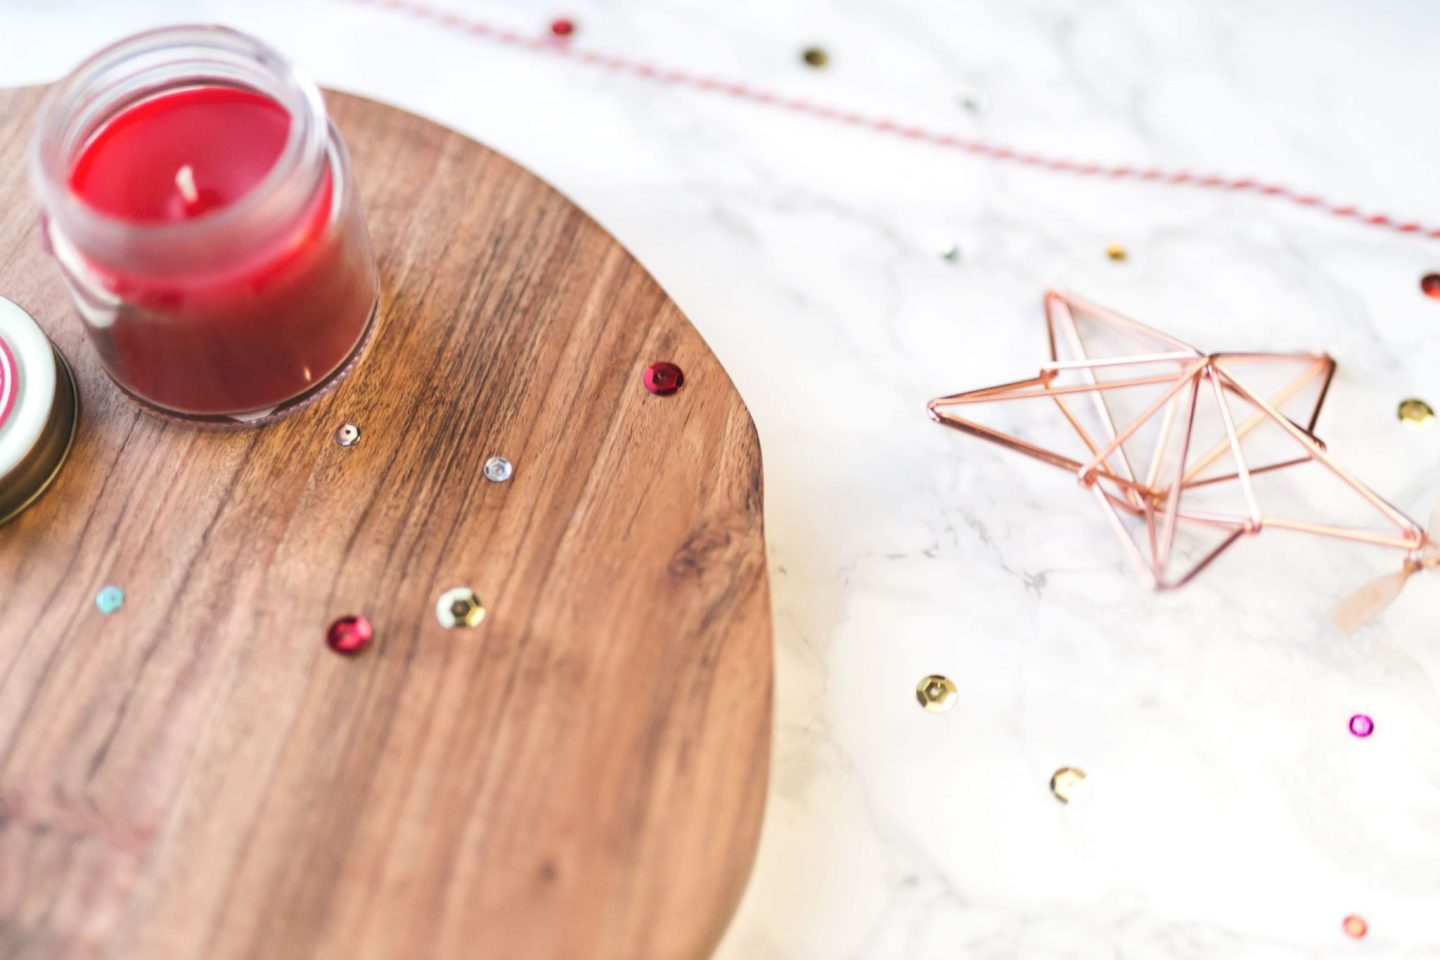 Christmas, flatlay, flat lay, star, candle, wood, marble, copper, Bloggers, British, UK, English Blogs, Katie Writes Blog, Katie Writes,